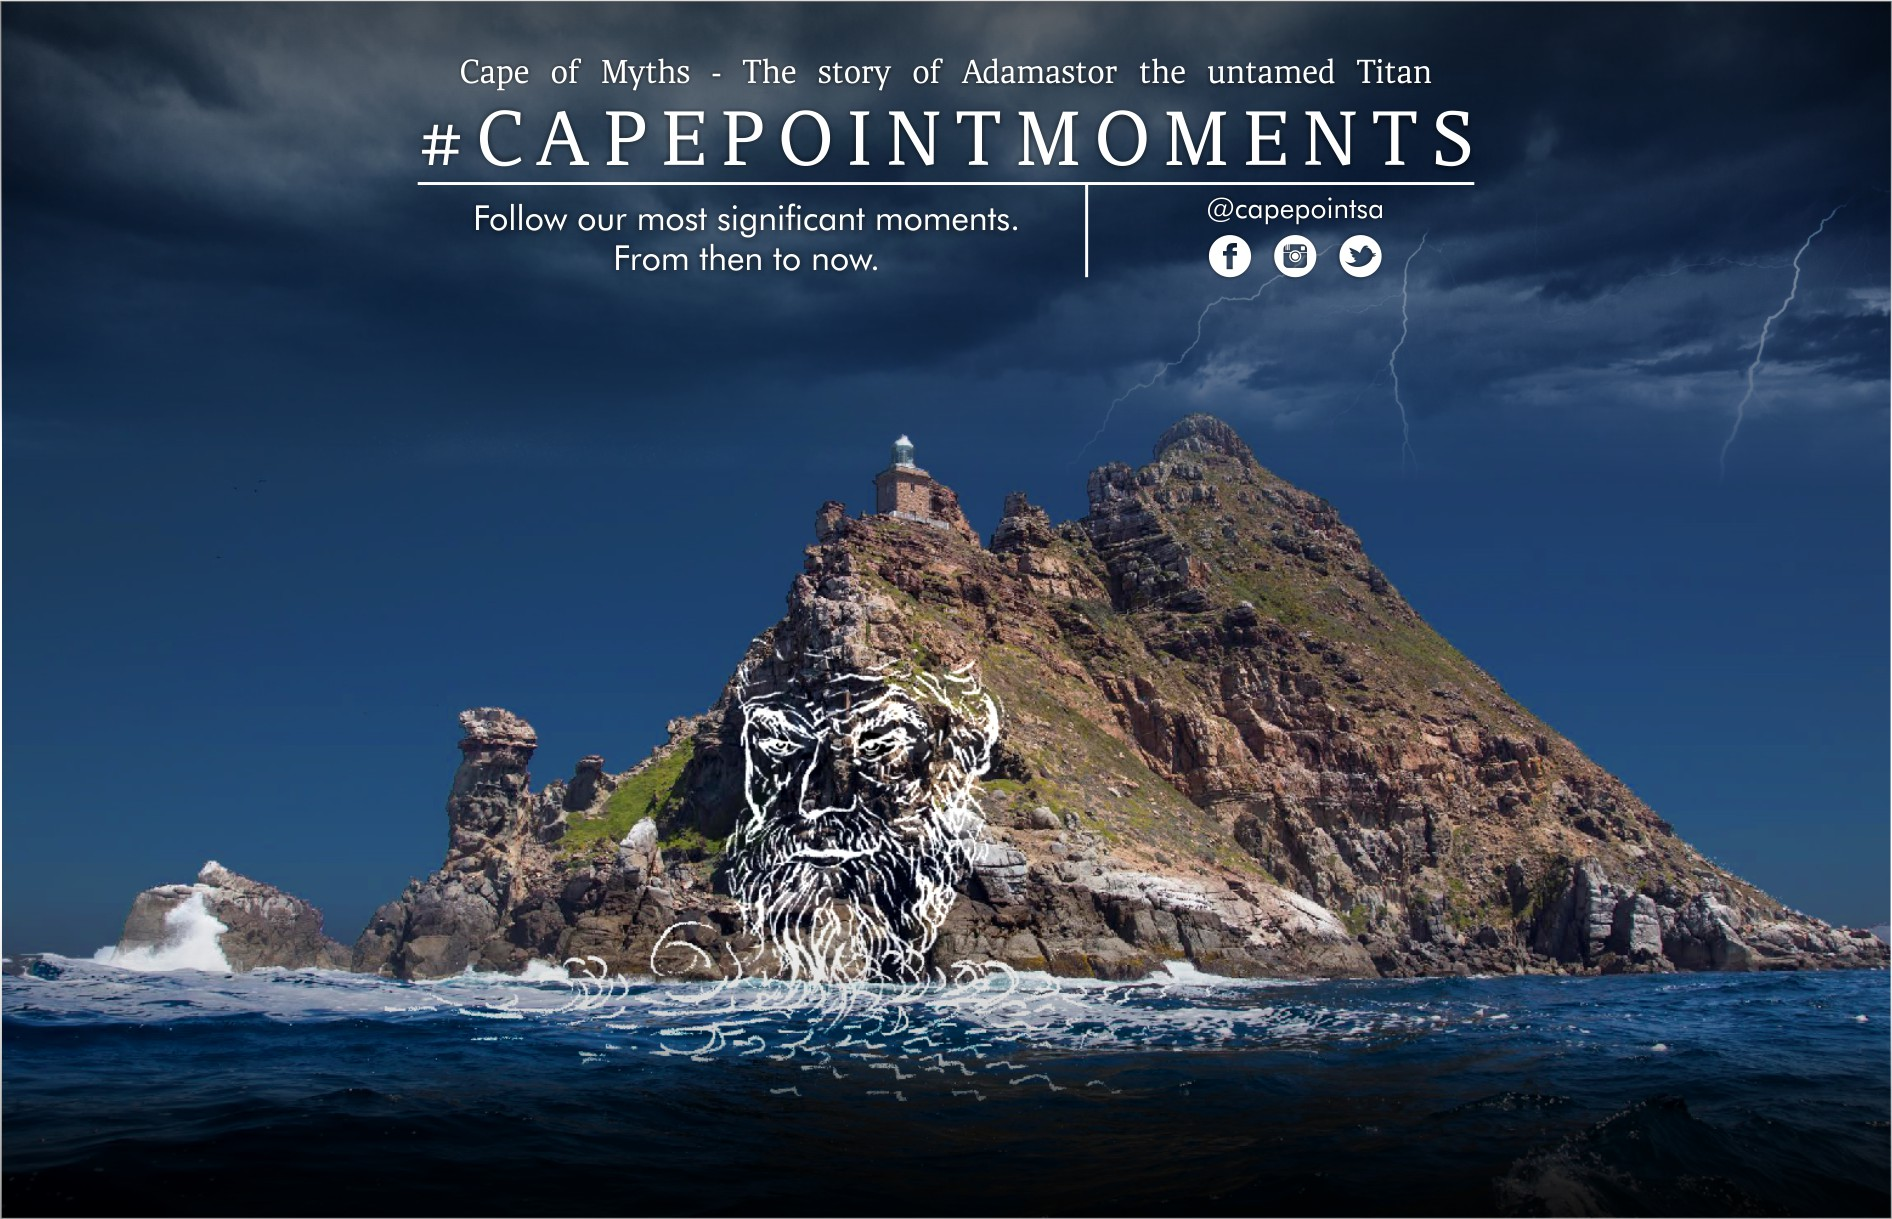 Cape of Myths